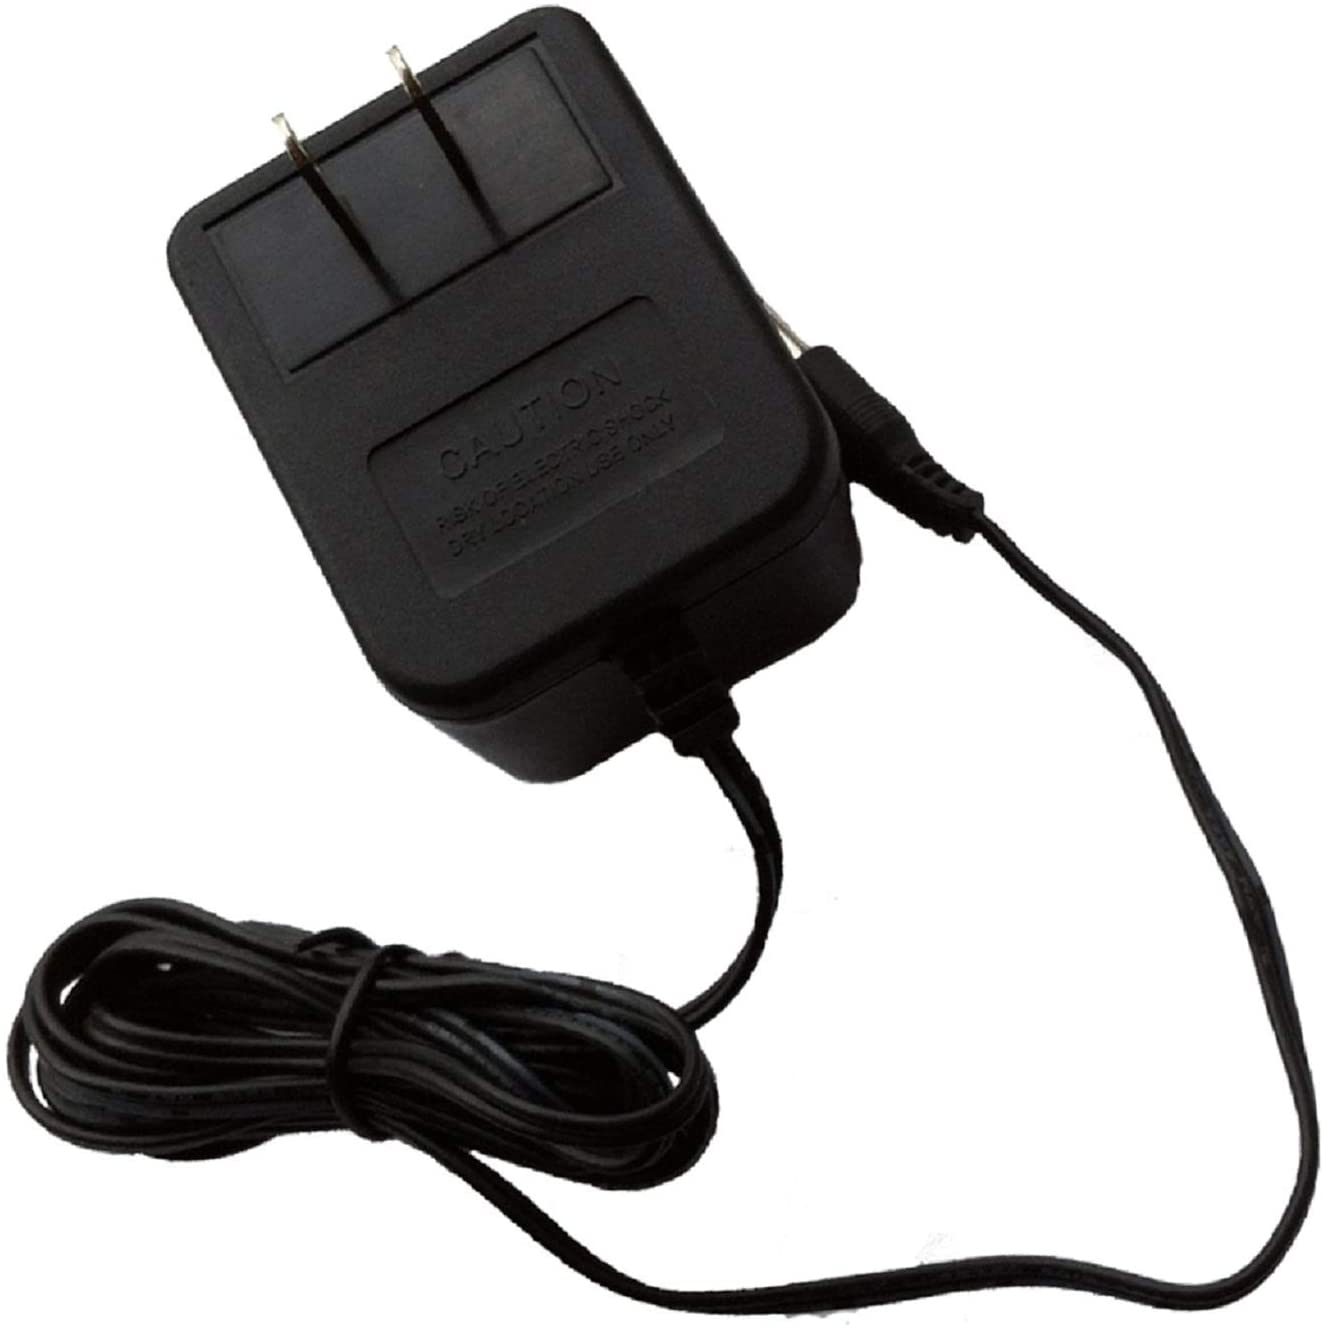 41-060-1200A 41-0601200A 410601200A Class 2 6VAC Power Supply Cord Cable PS Wall Home Battery Charger Mains PSU UpBright New 6V AC//AC Adapter Replacement for Model with 2-Prong Connector.